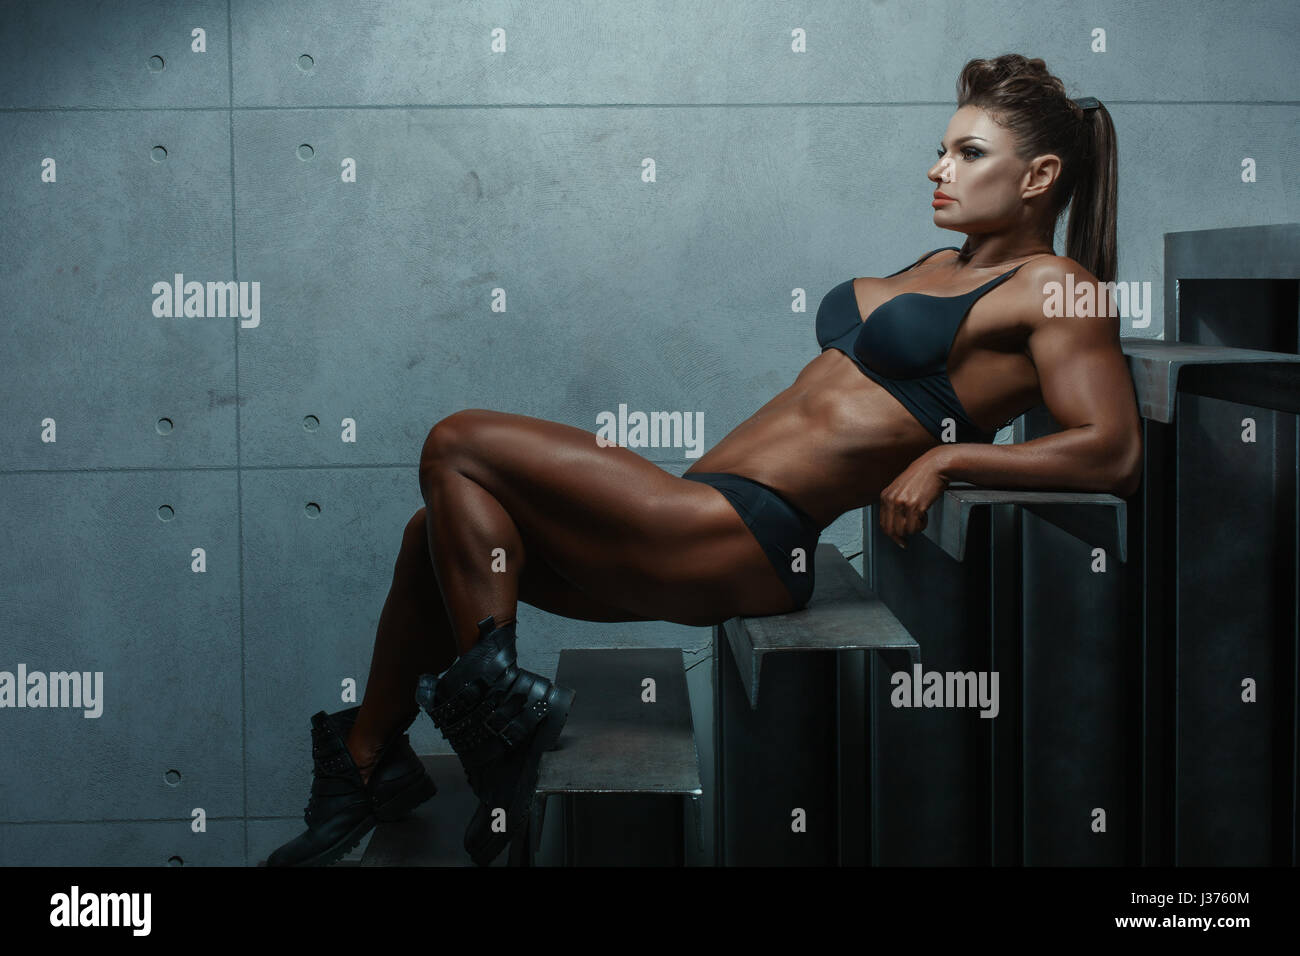 Female bodybuilder lying on the steps, her muscles are clearly visible. Stock Photo